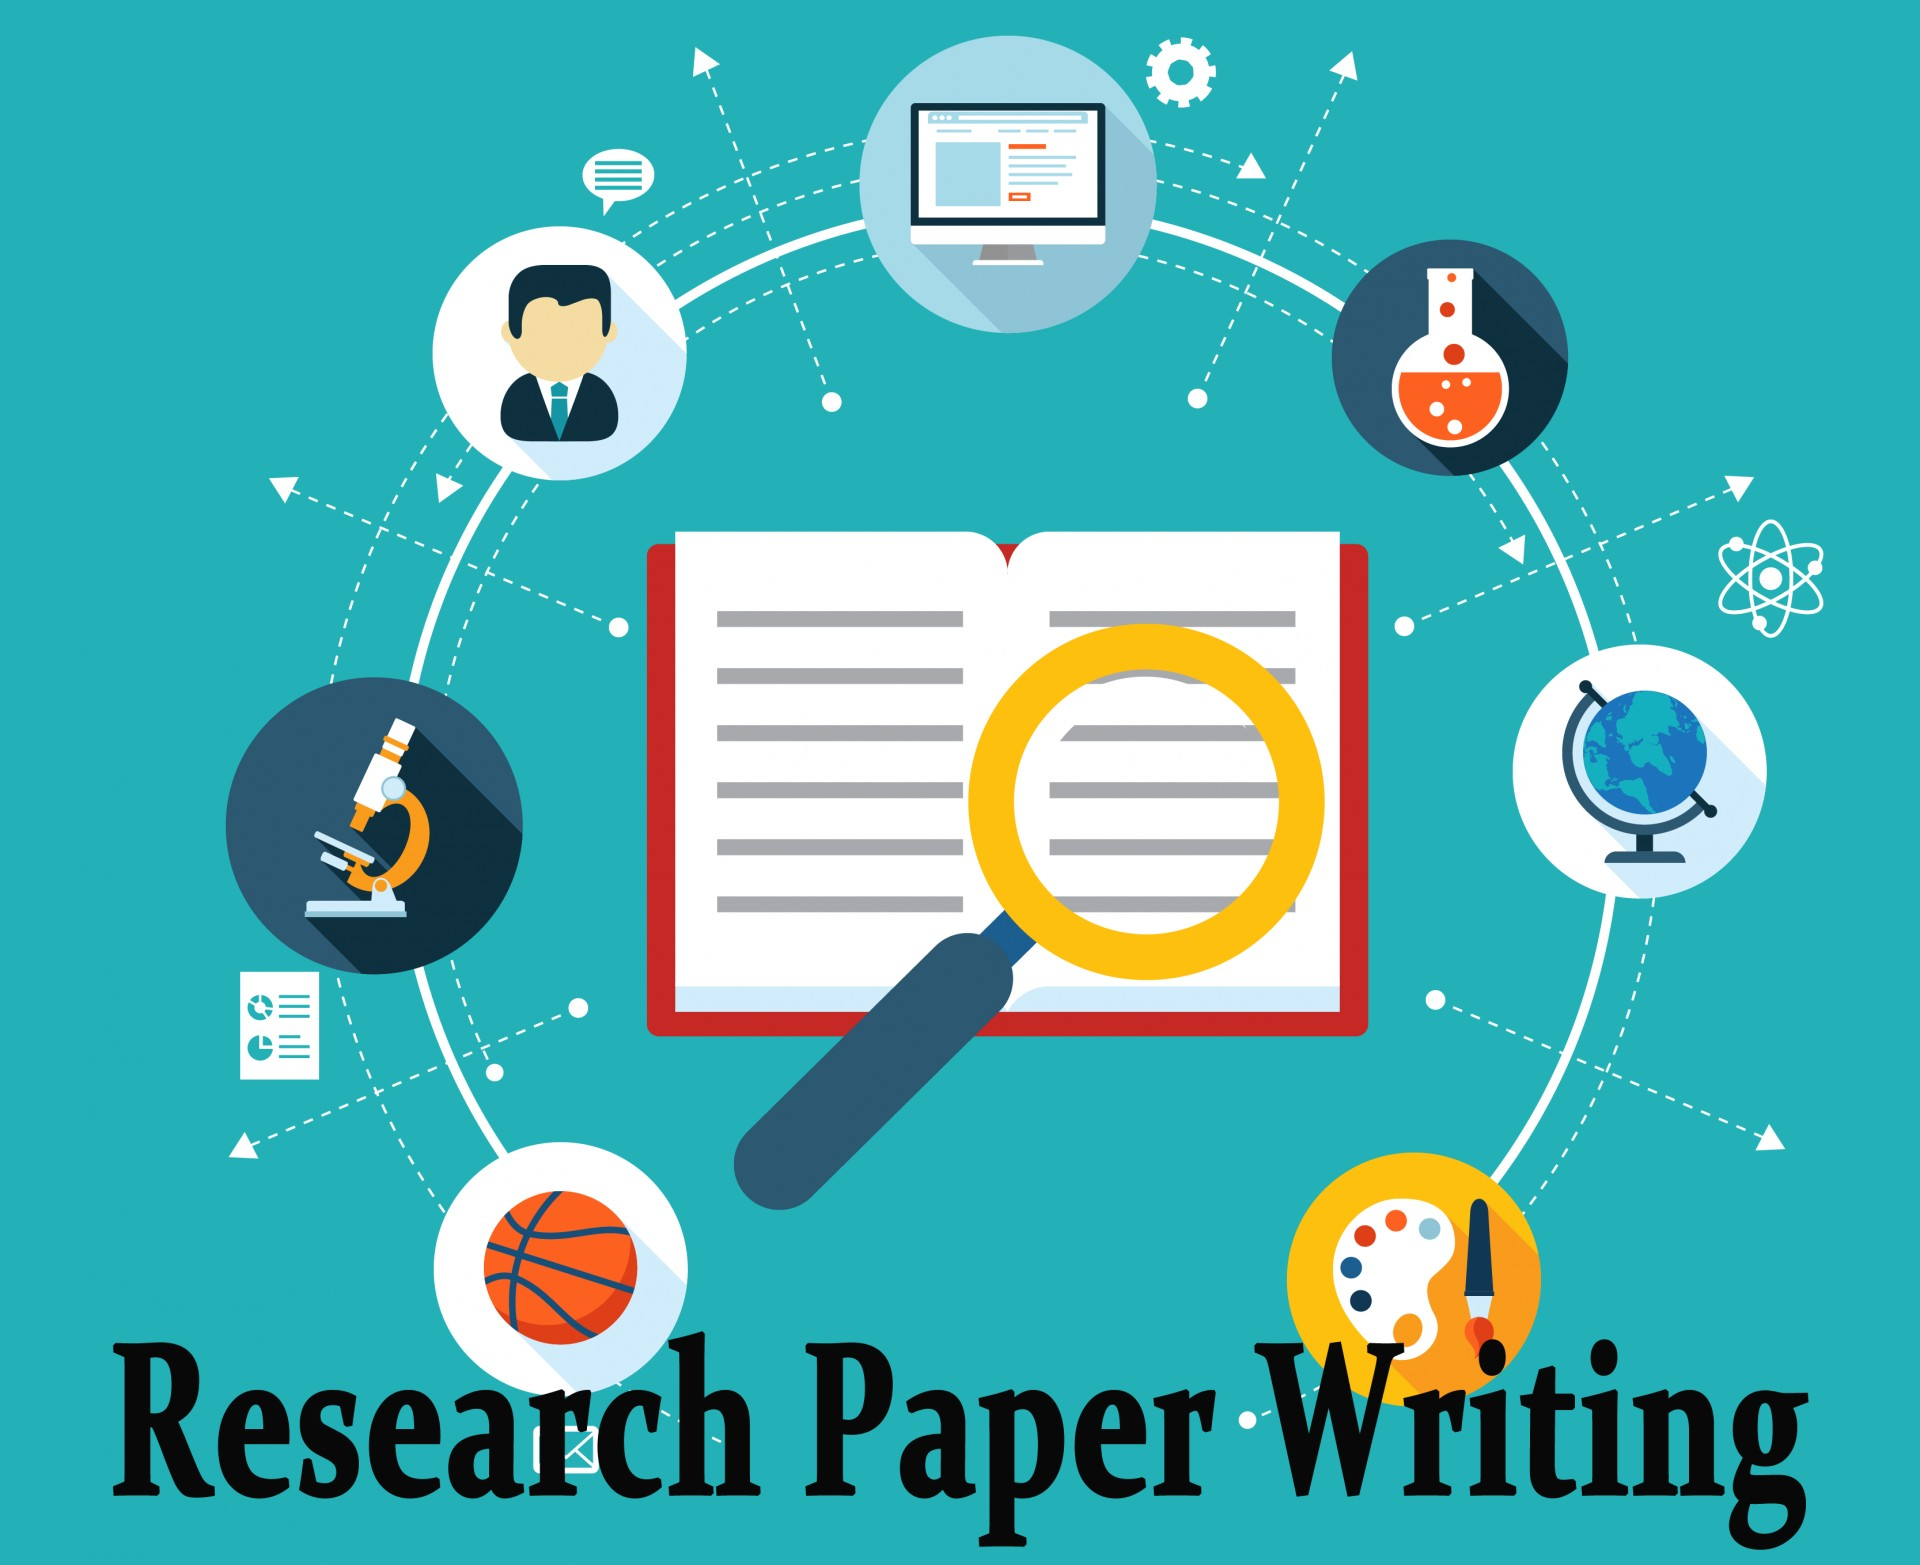 014 503 Effective Research Writing Researchs Fascinating Papers Best Paper Services In India Benefits Style 1920